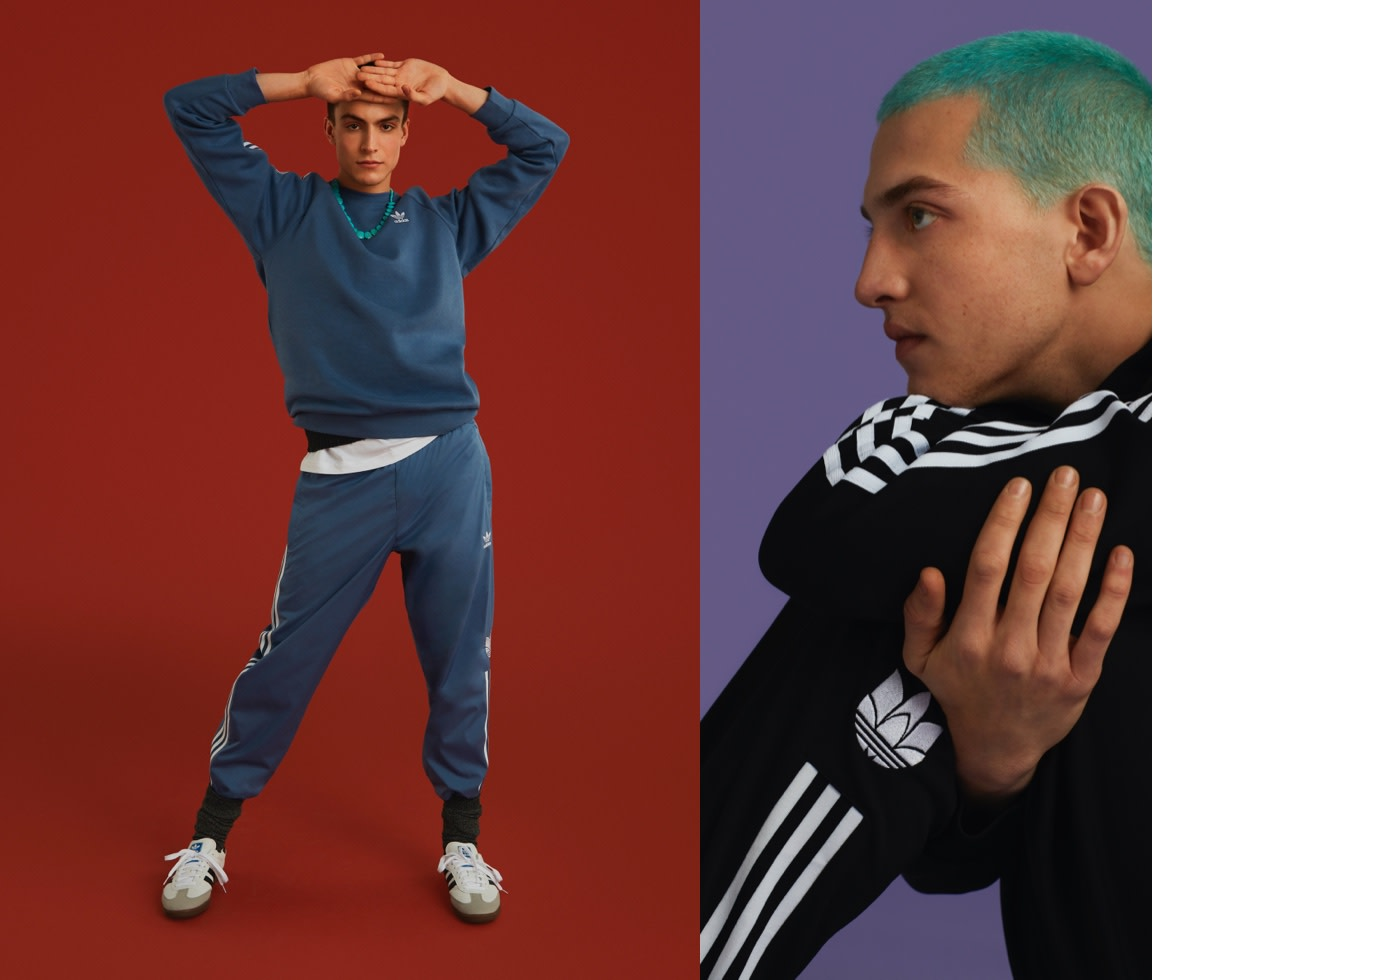 Guy standing in blue tracksuit and another guy with blue hair facing him.